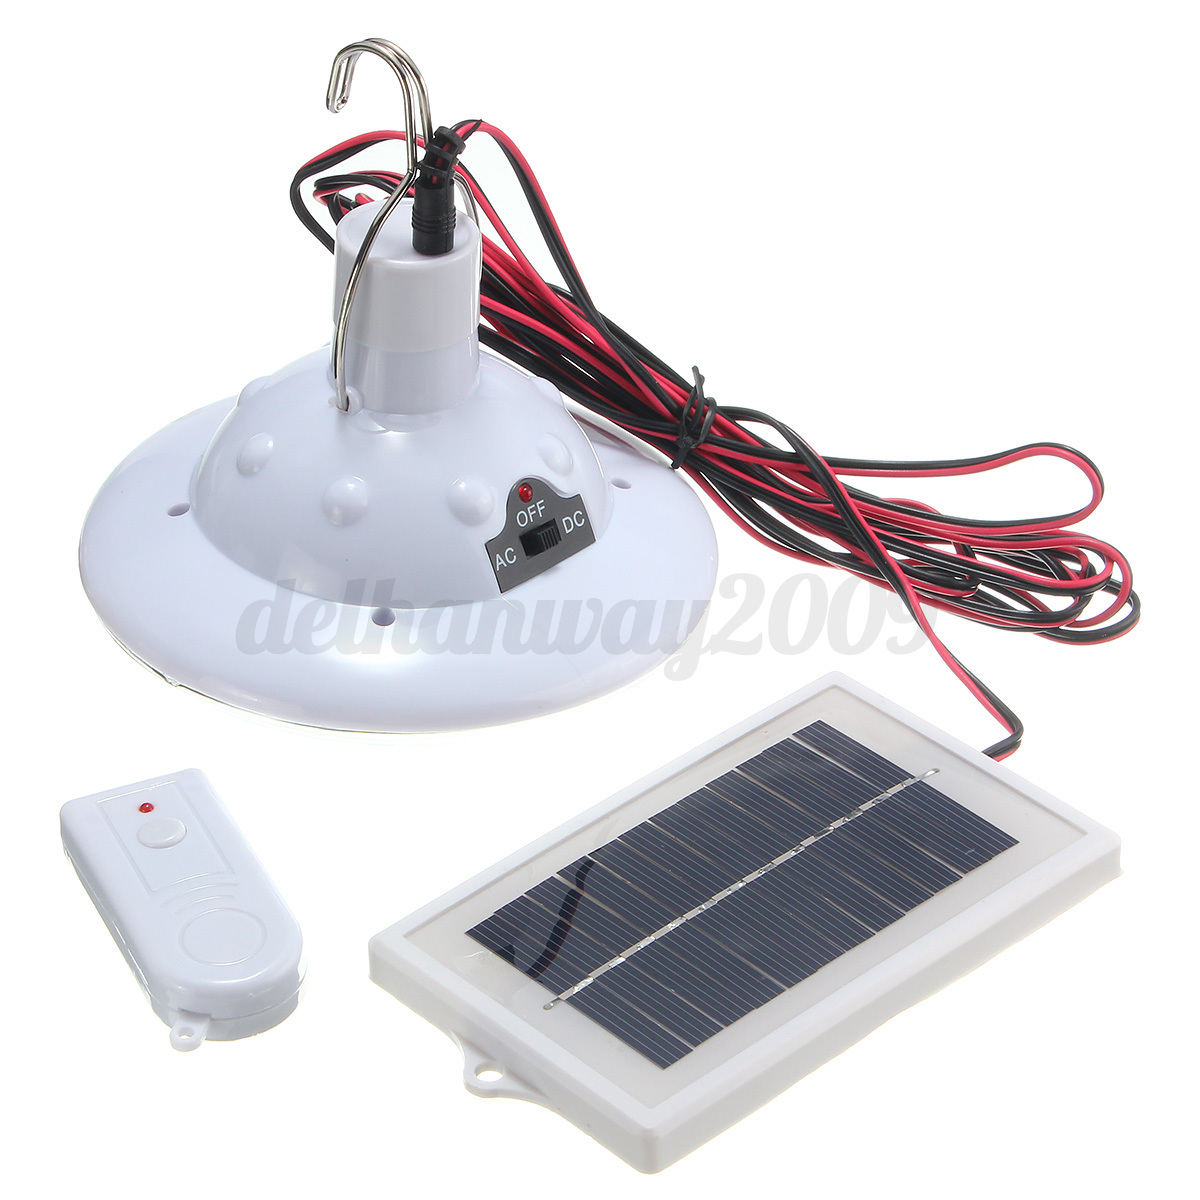 E27 Solar Battery Powered 22 Led Camping Light Outdoor: 22 LED Solar Powered Yard Outdoor Tent Light Camping Lamp